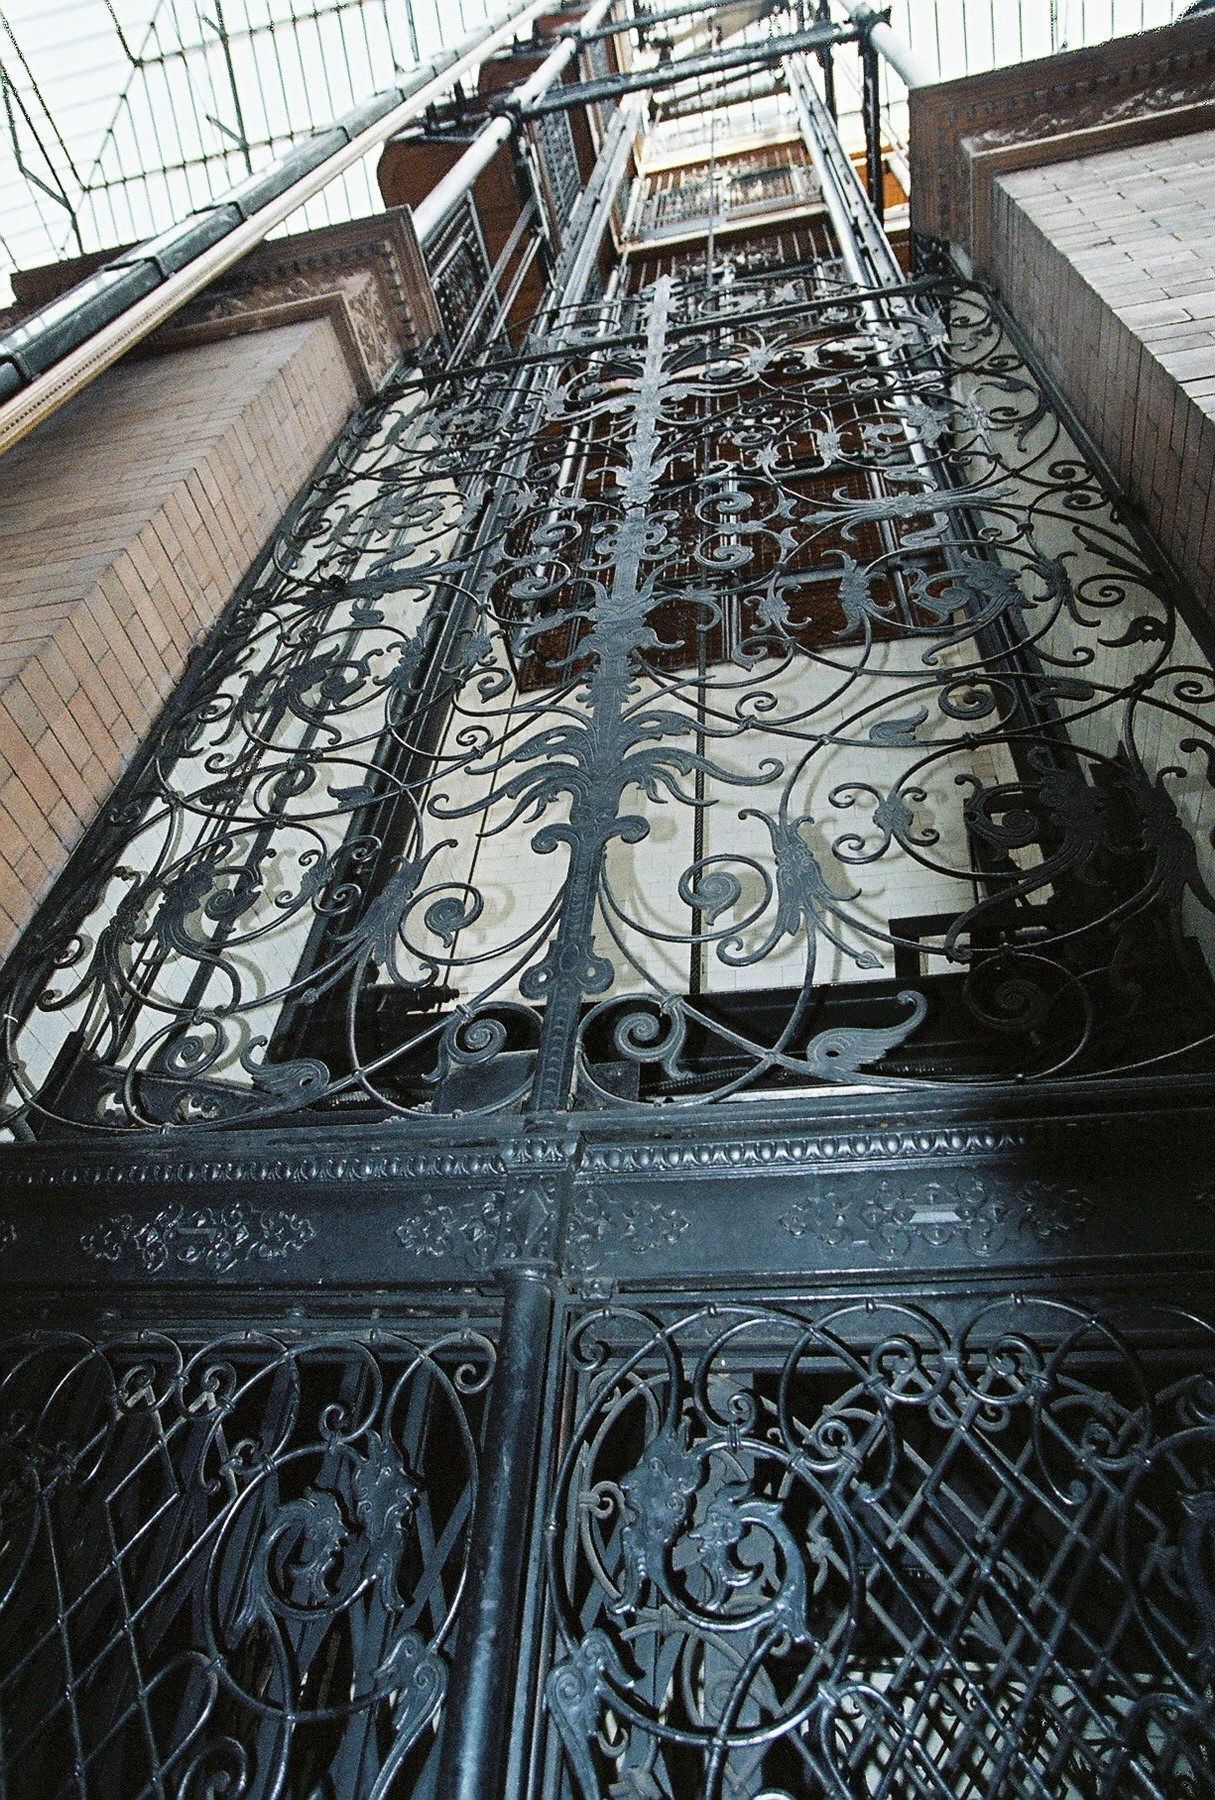 File:Bradbury-elevator-Jan 2012 jpg - Wikimedia Commons